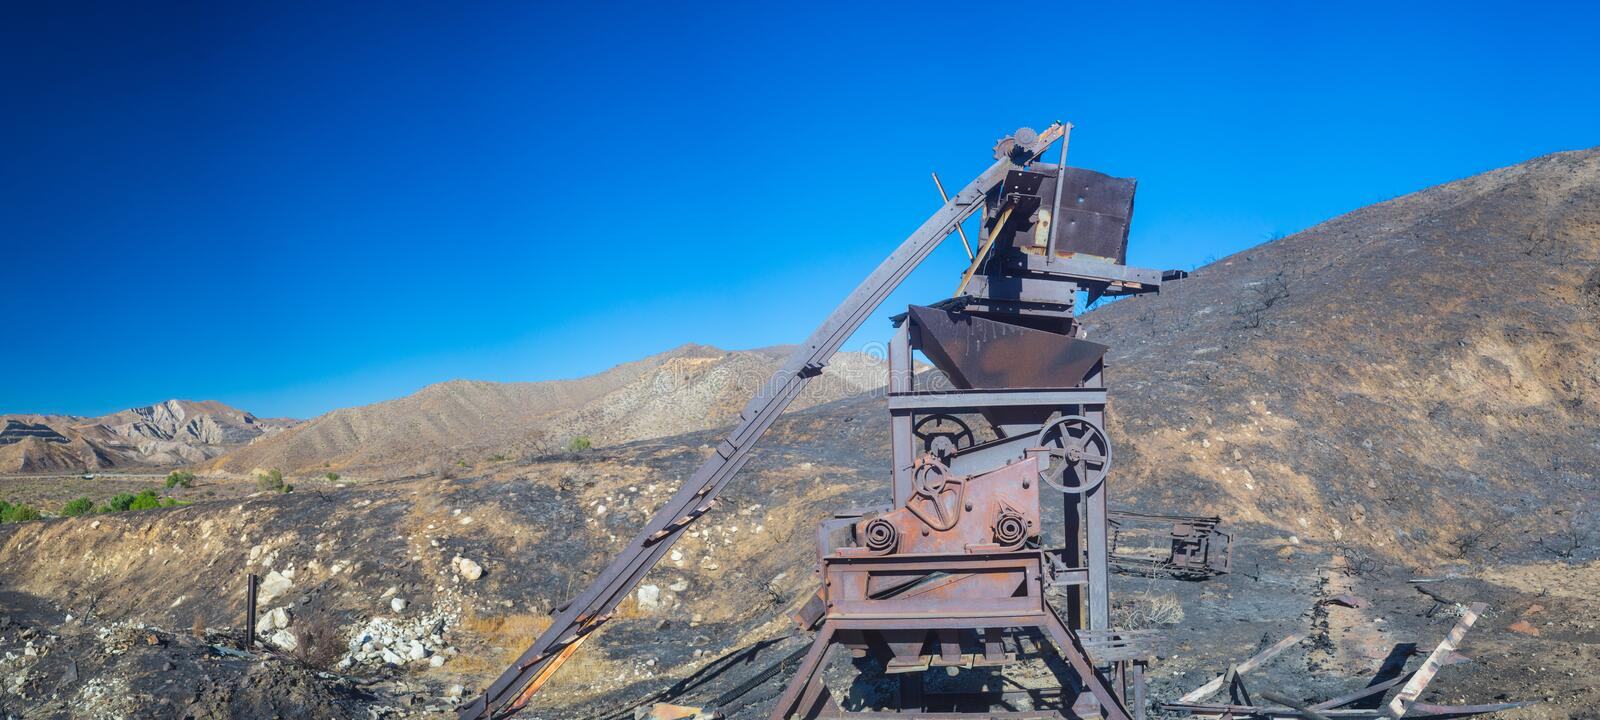 Profile of Mining Equipment royalty free stock images